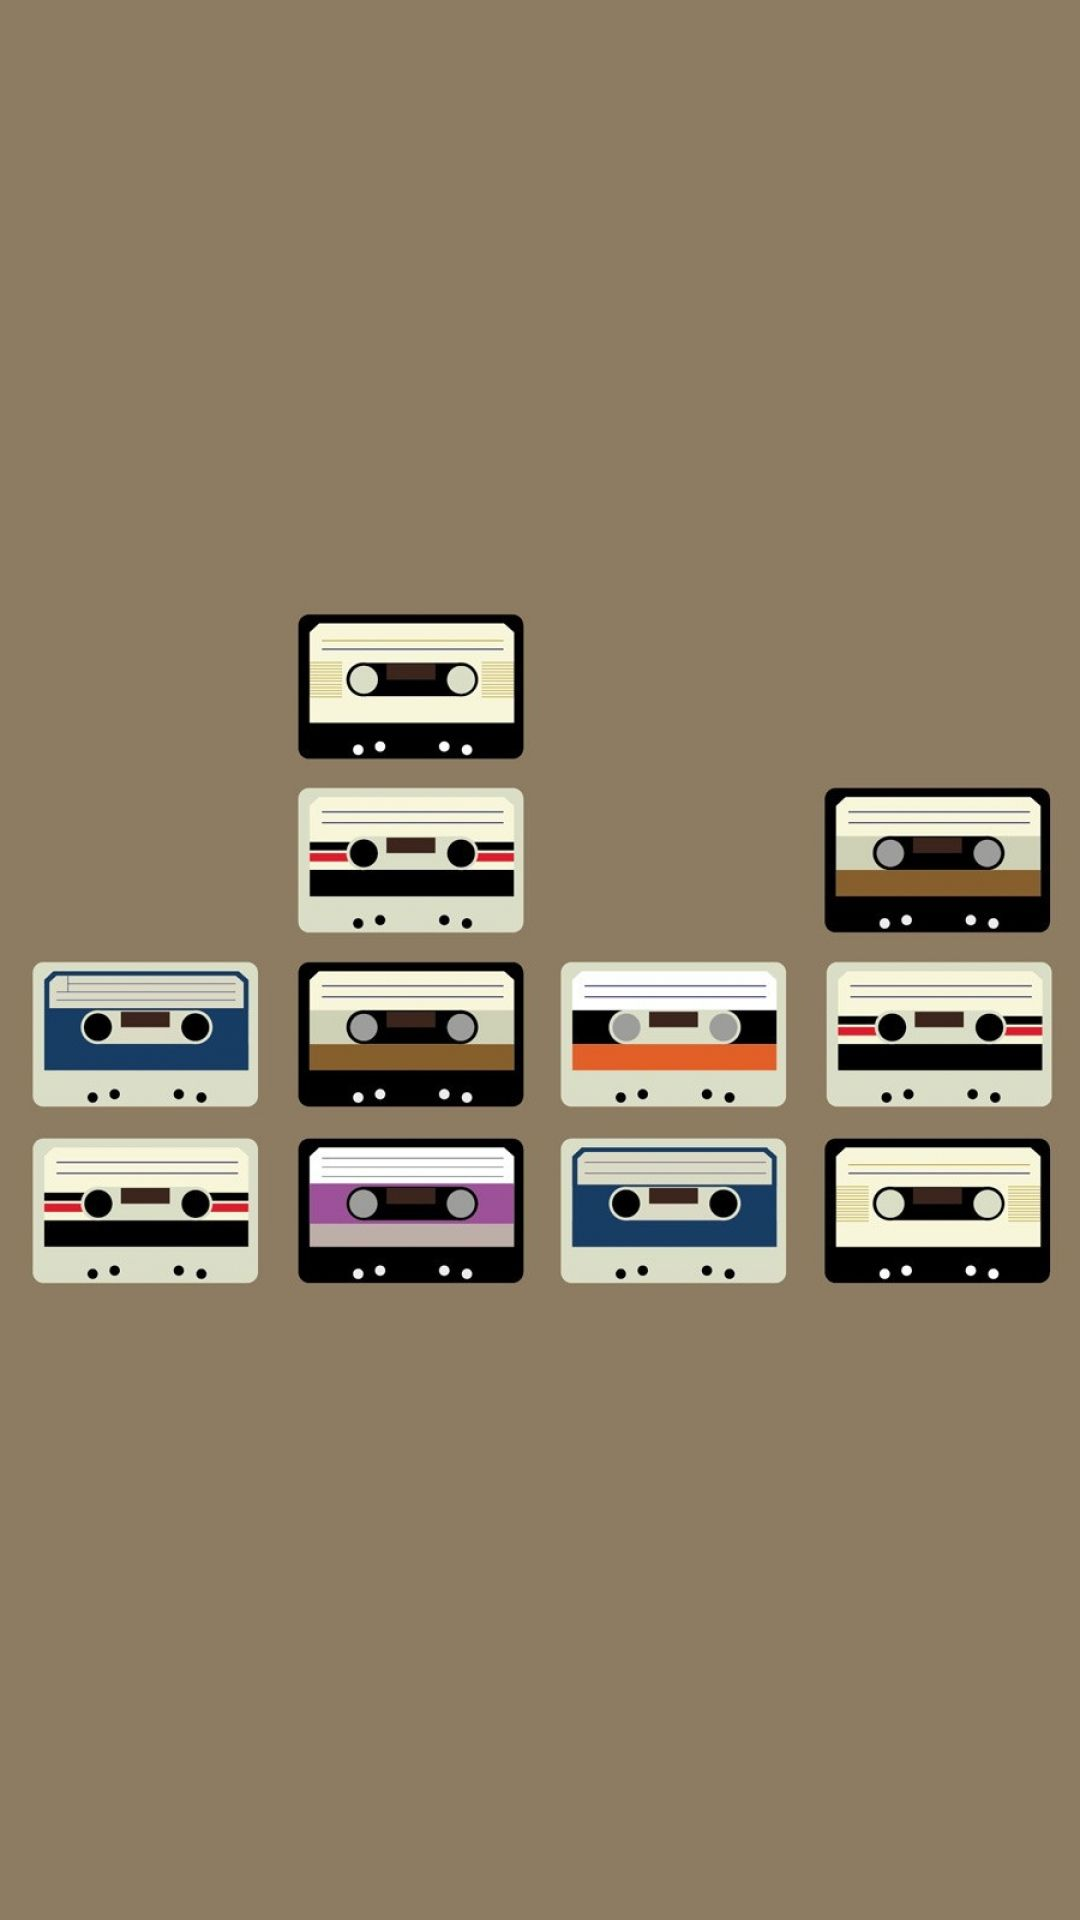 1080x1920 Samsung Galaxy S4 wallpapers Wallpapers: Retro Casette Set ...